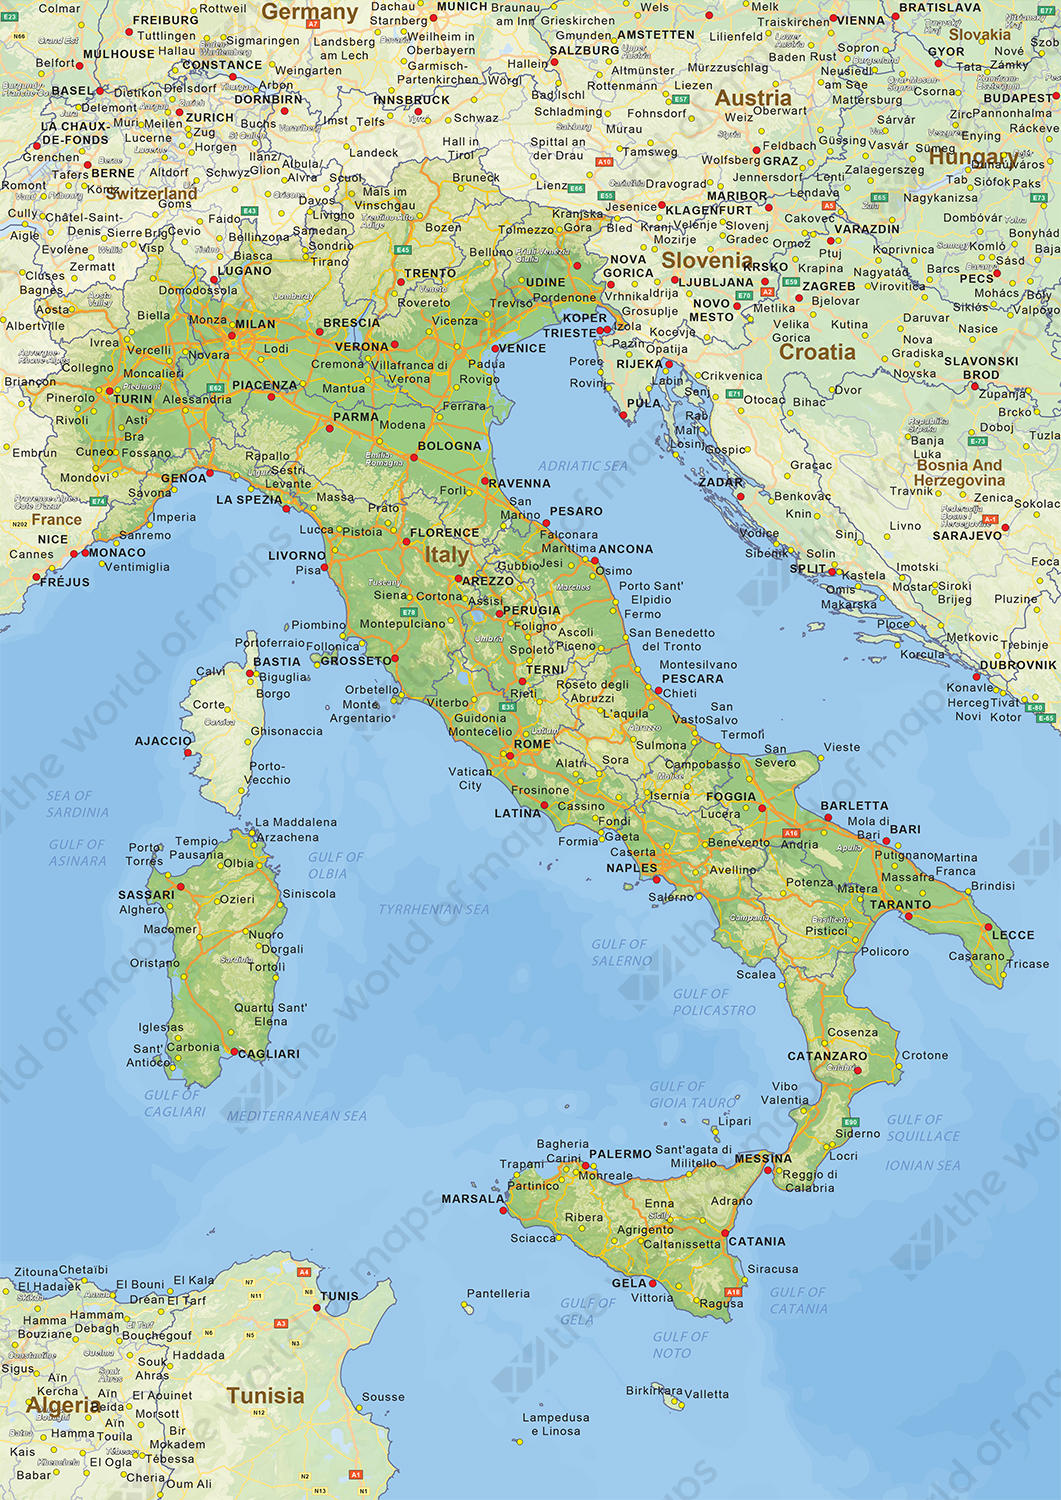 Italy Map 1500.Digital Physical Map Of Italy 1443 The World Of Maps Com